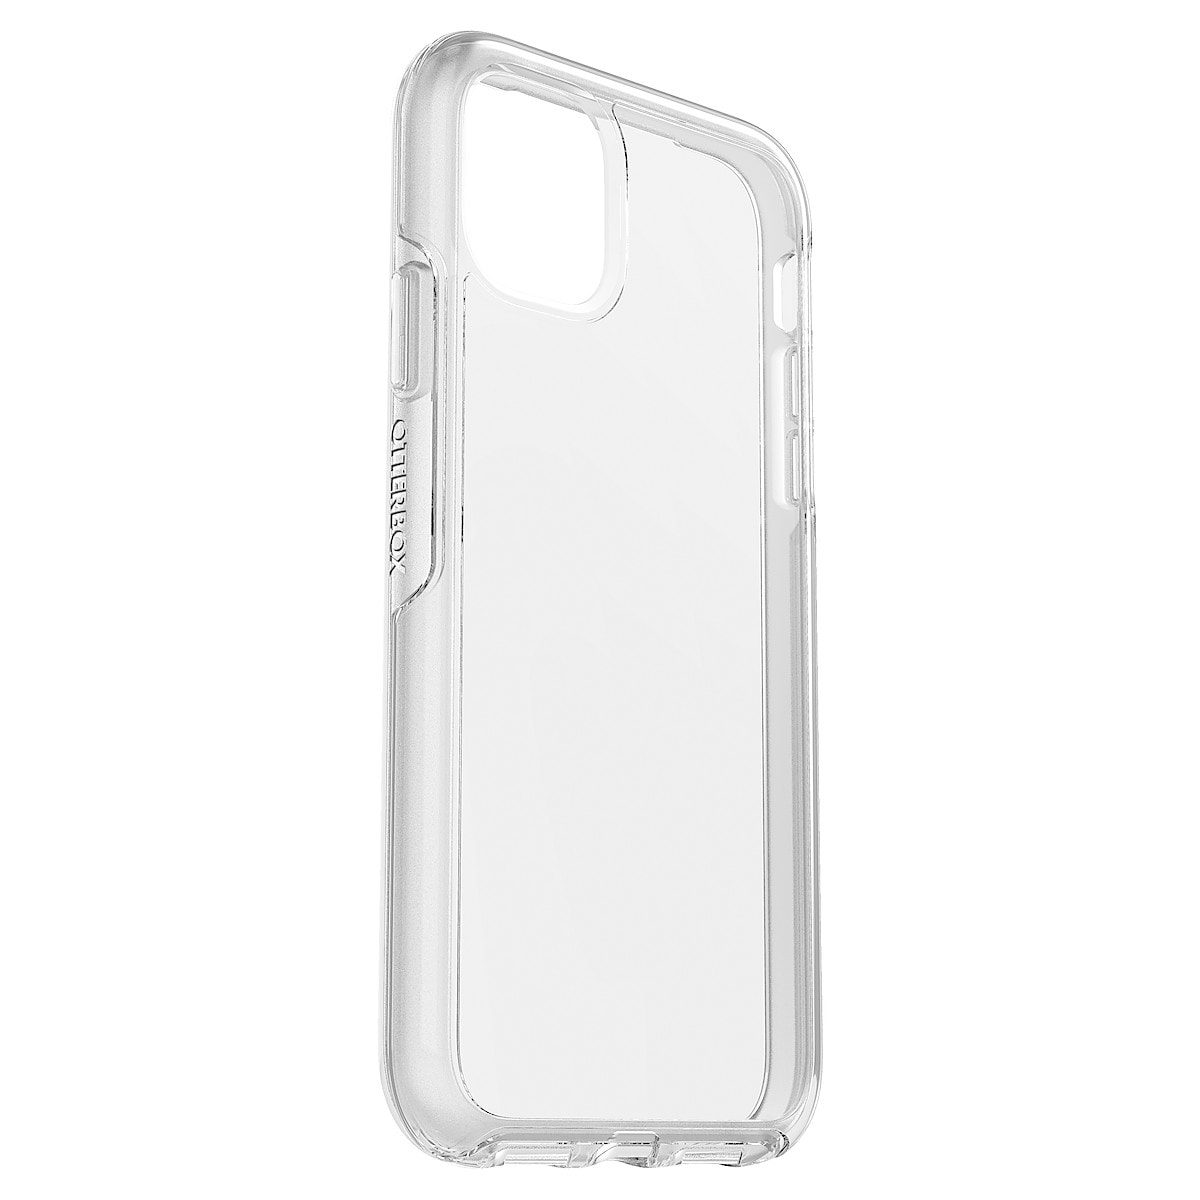 Otterbox Symmetry Clear för iPhone 11 Mobilskal